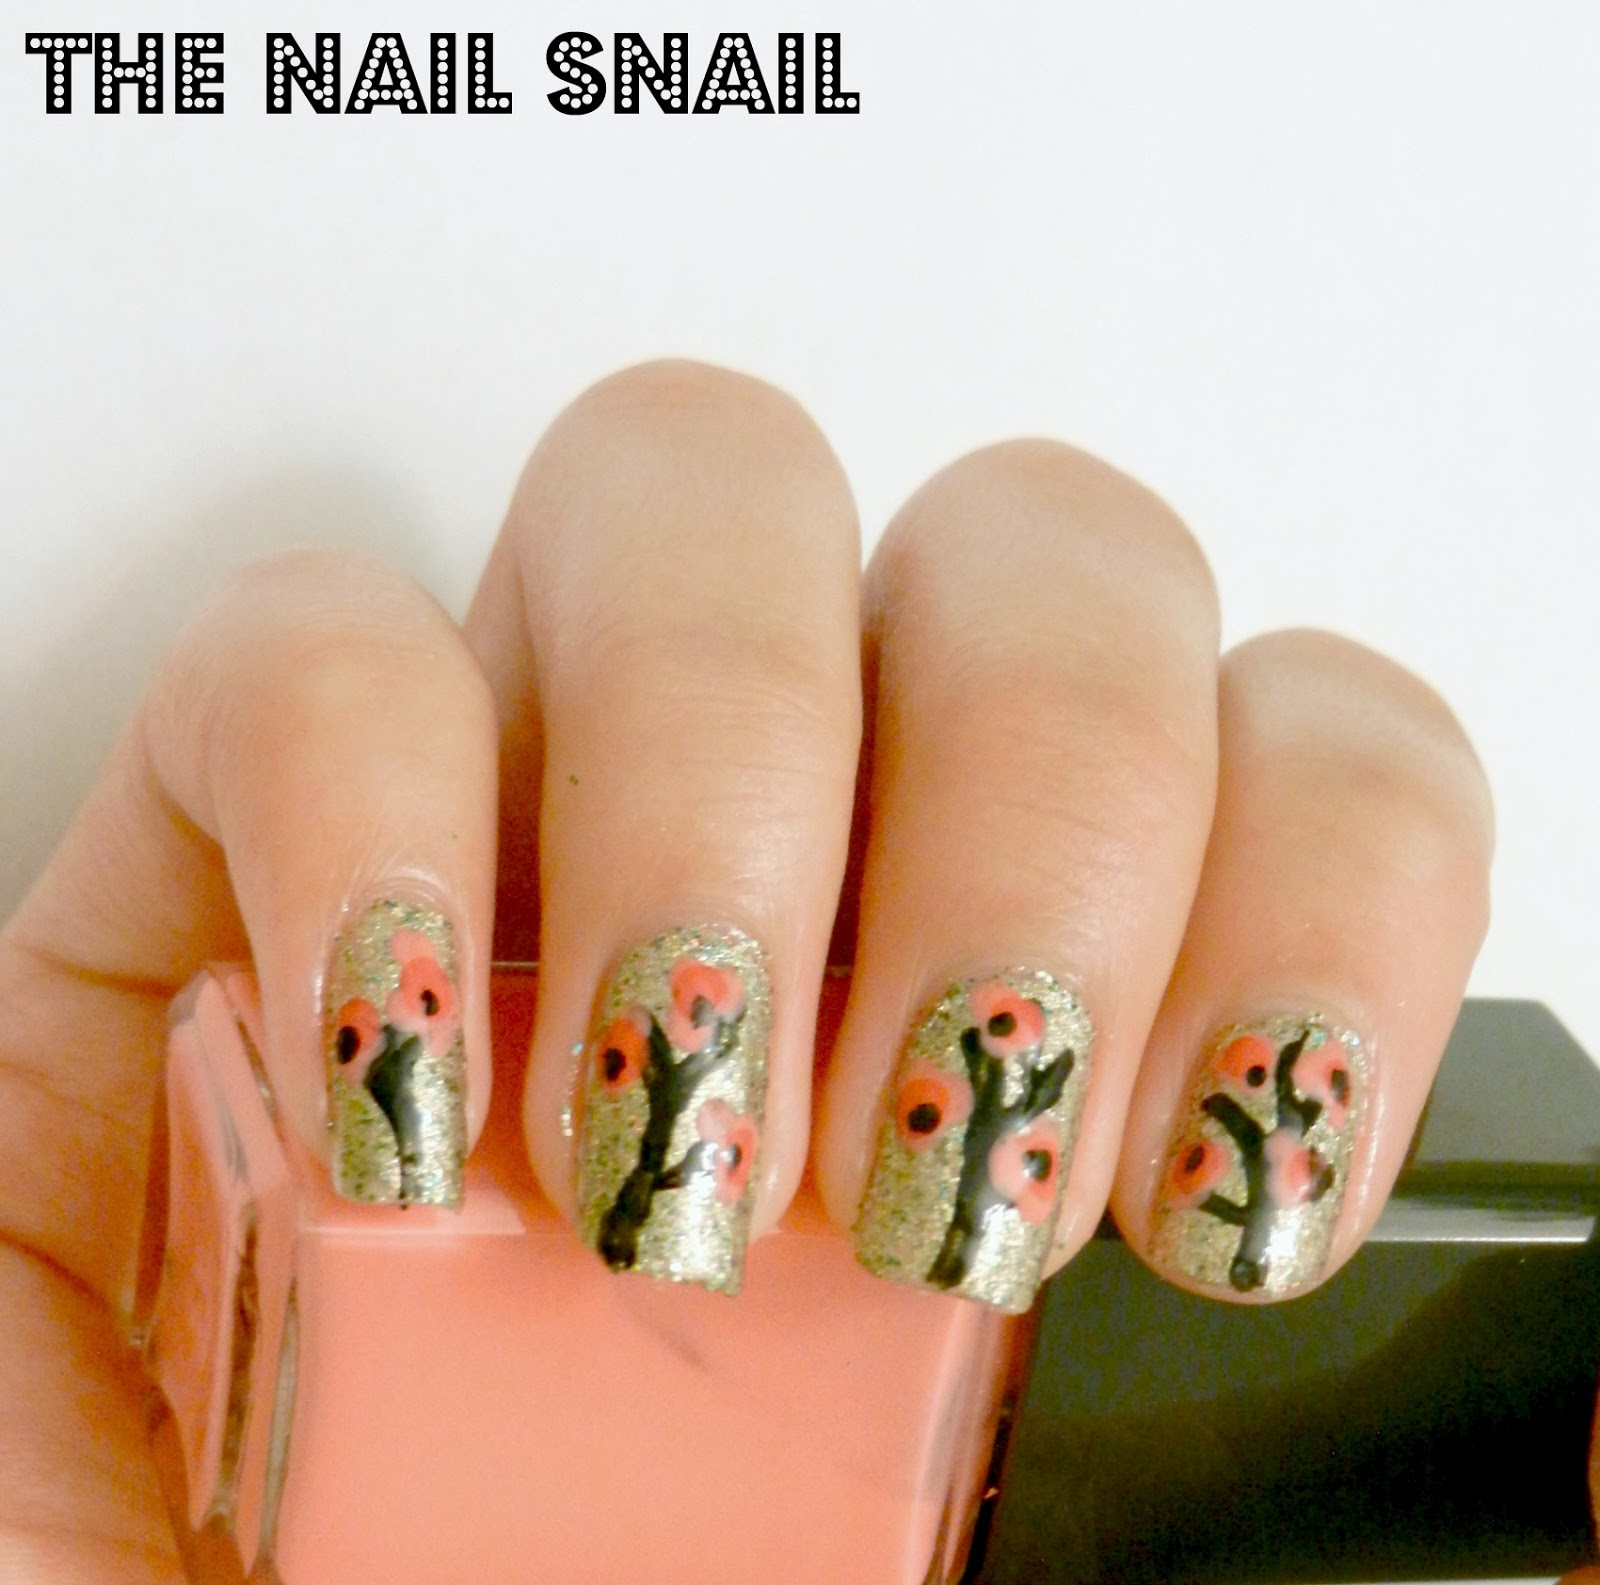 How to get 2 nails apart